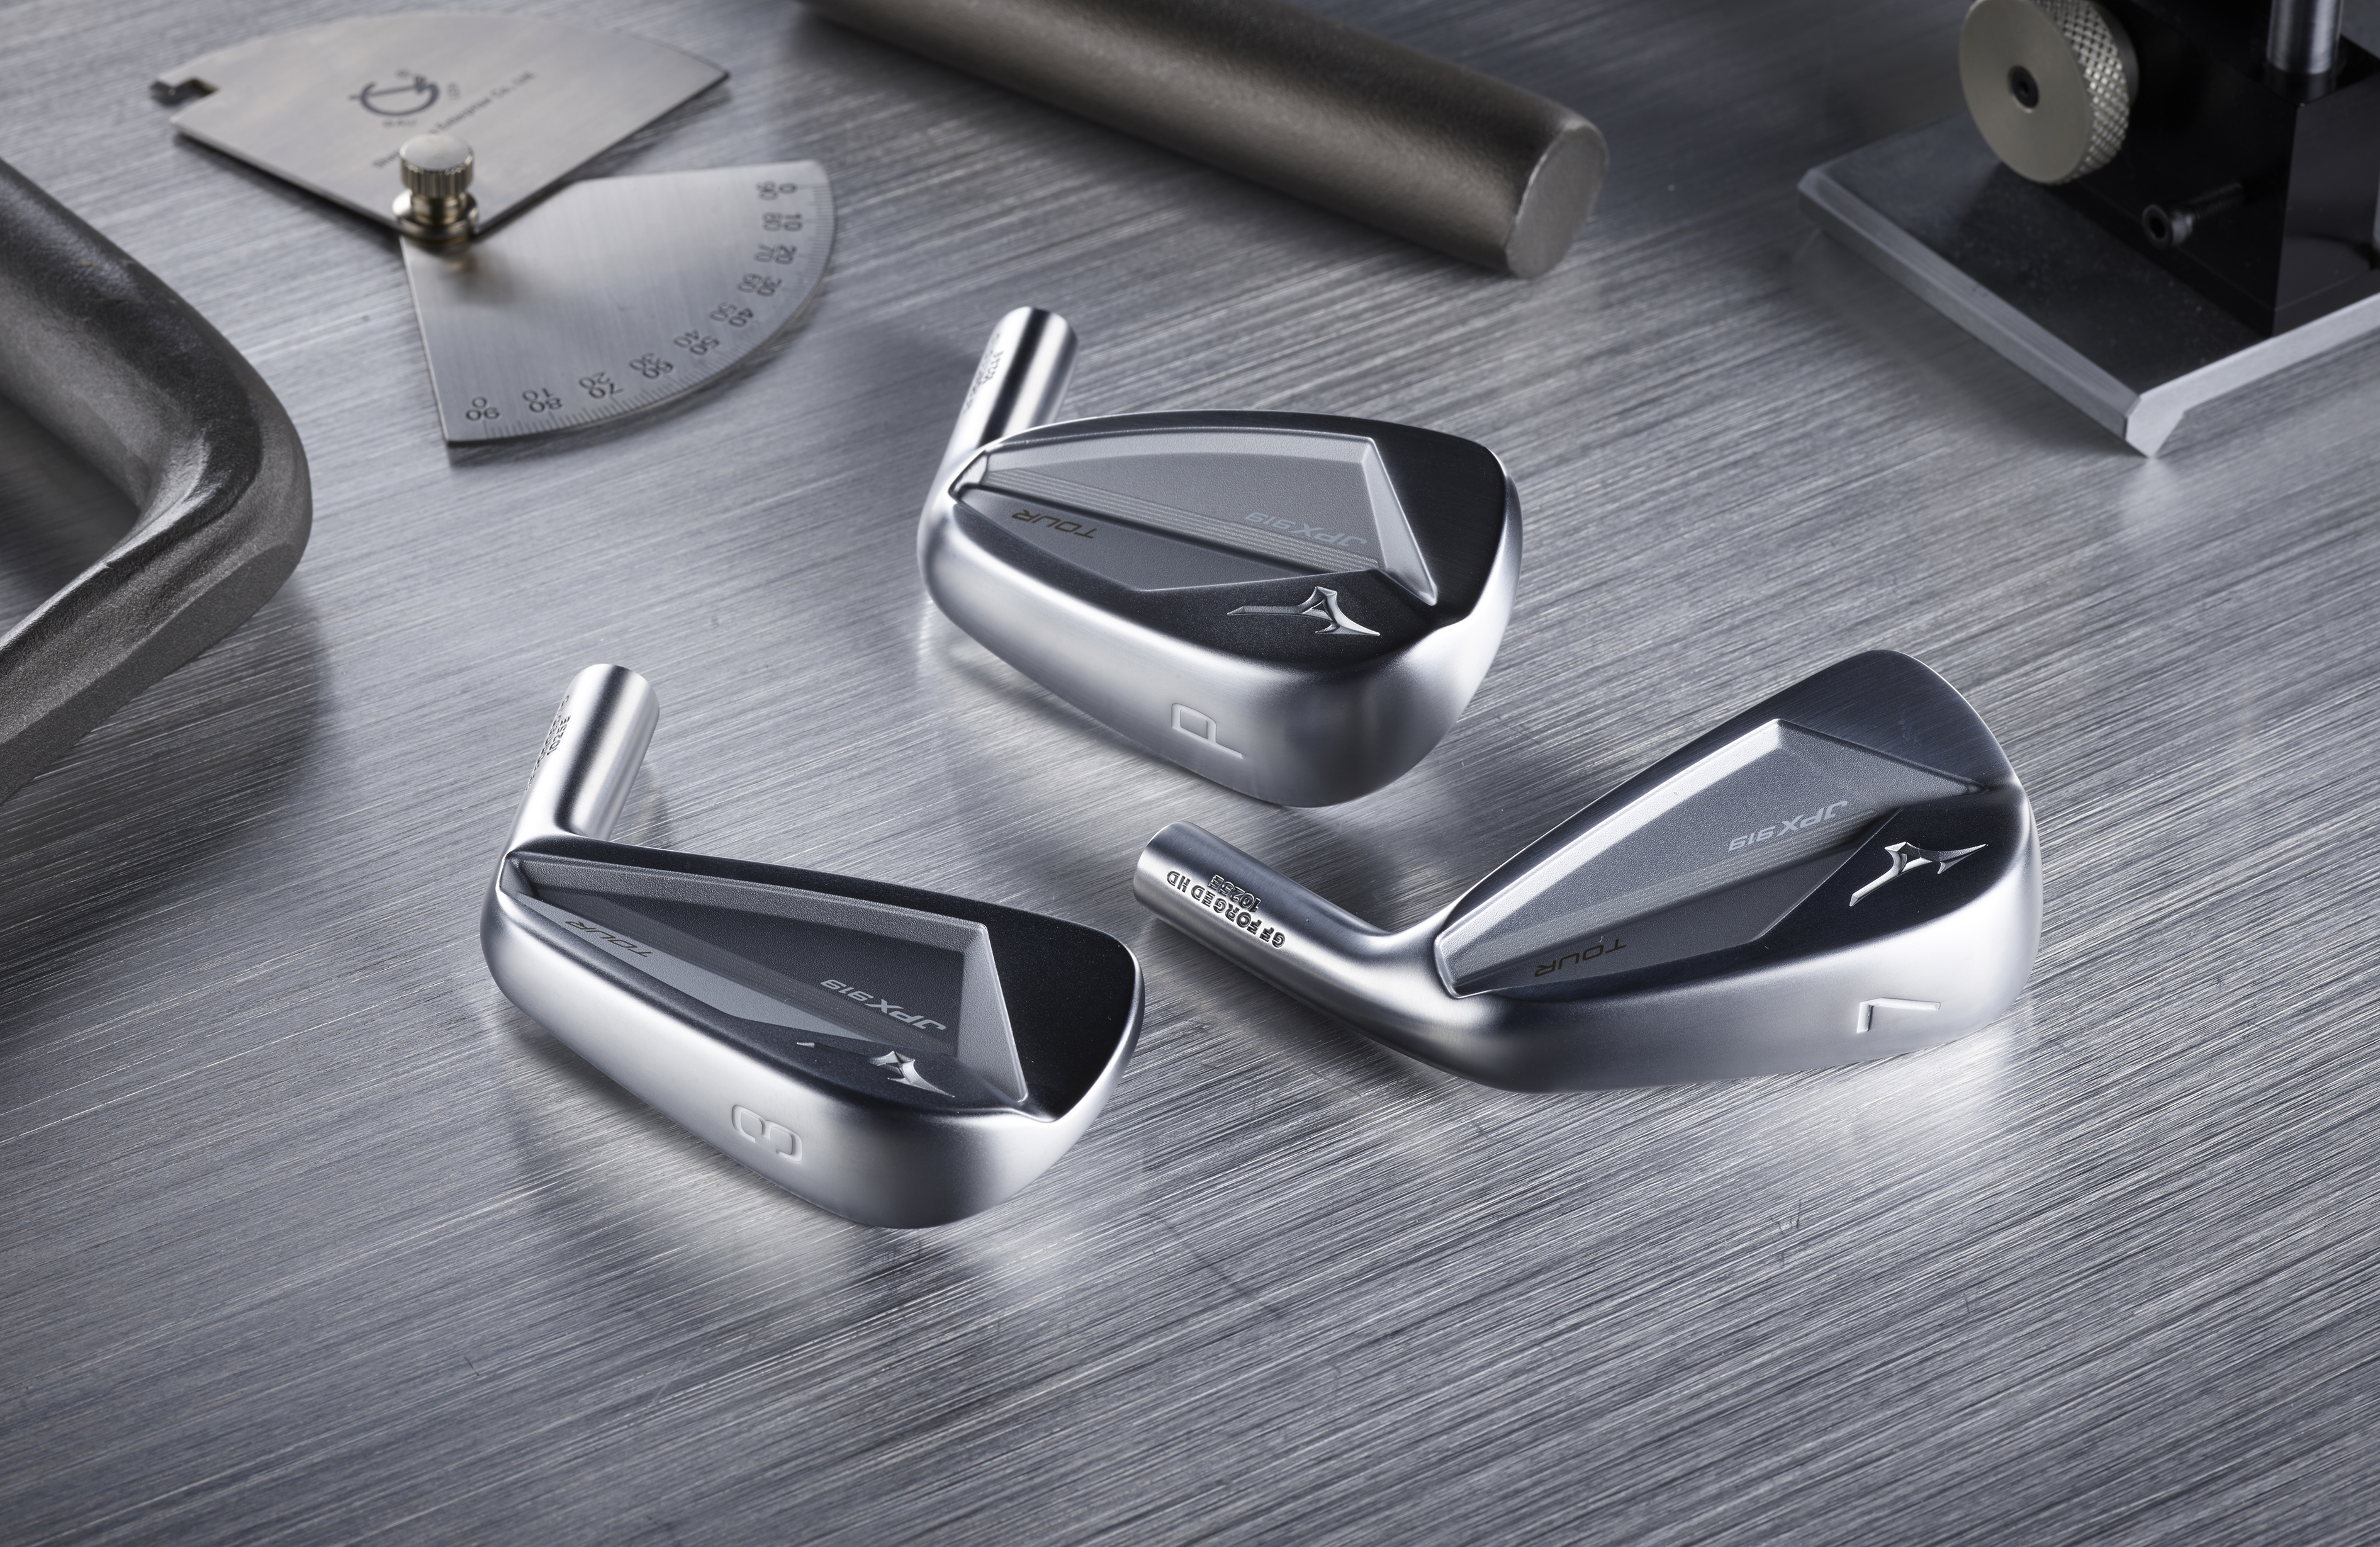 bbe744b04951 MIZUNO JPX919 TOUR IRONS PLAYED TO WIN AT BYRON NELSON